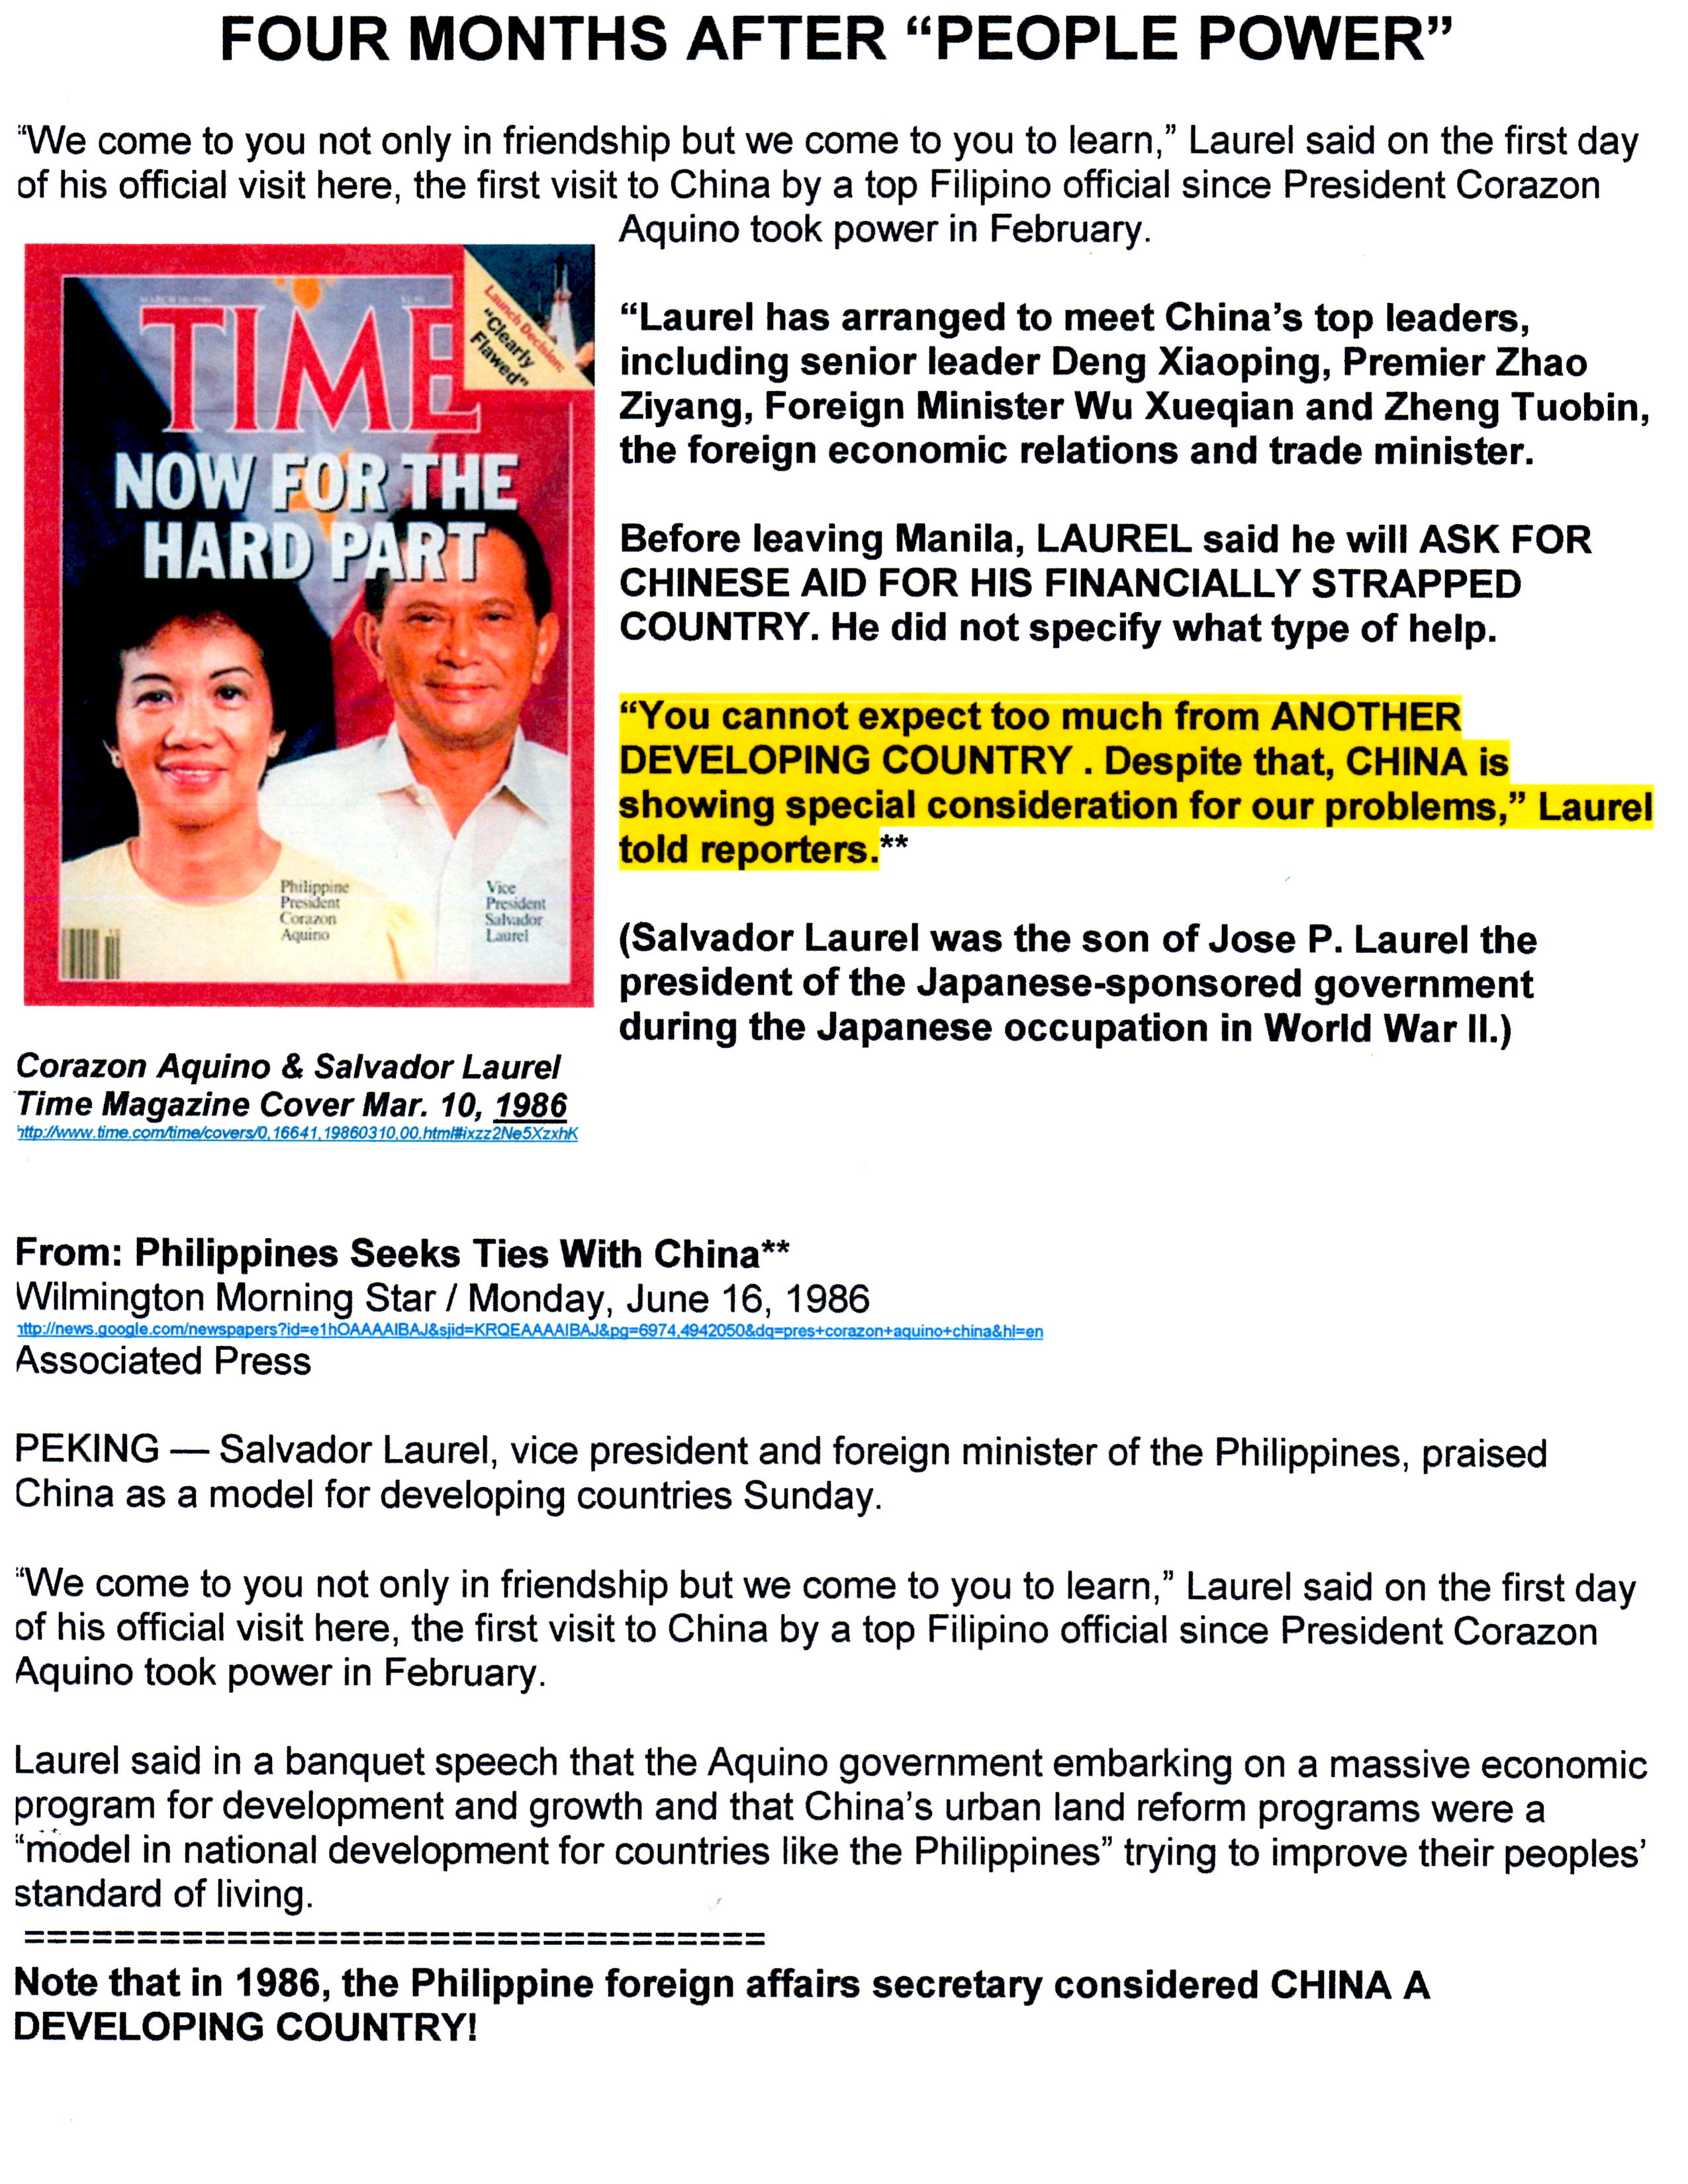 Blog Aquino-Laurel Seeks Ties with China 06-16-86